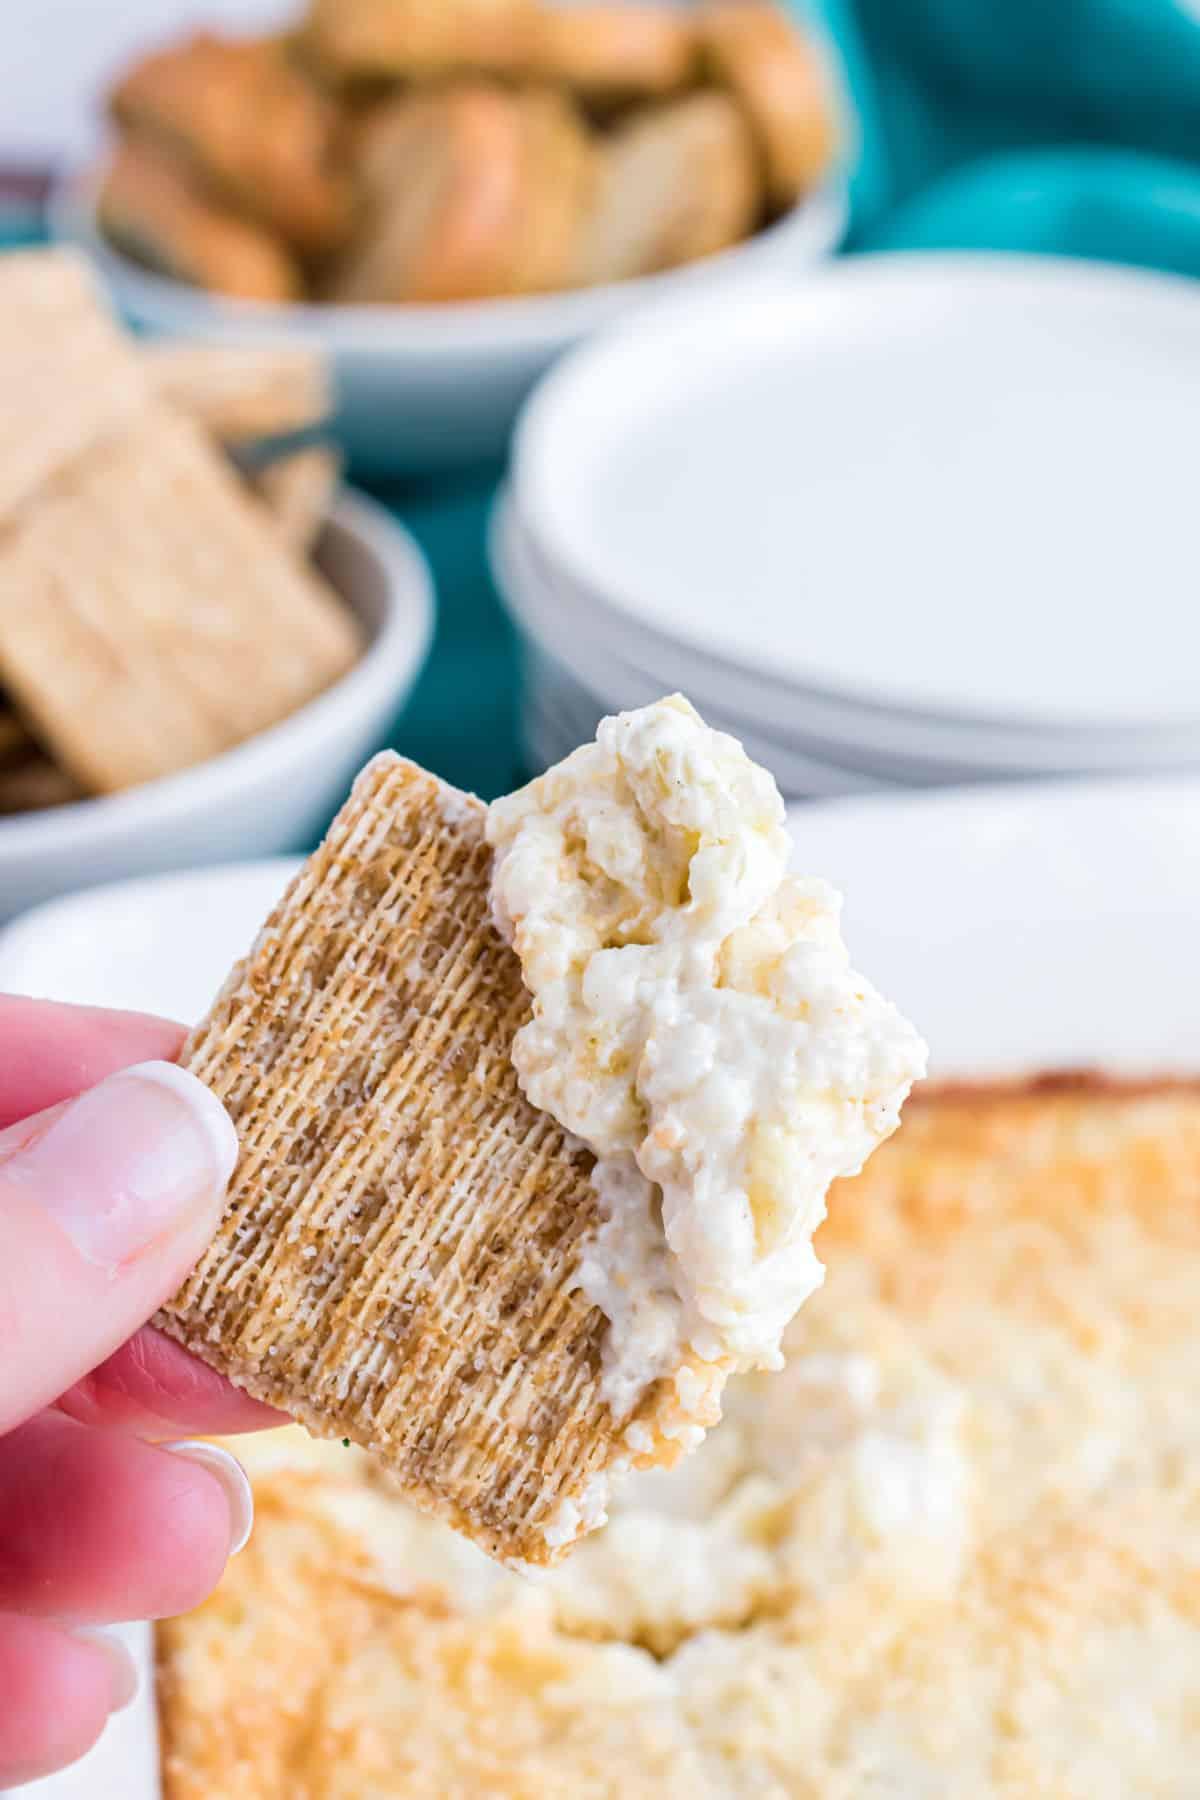 Warm artichoke dip scooped with a triscuit cracker.